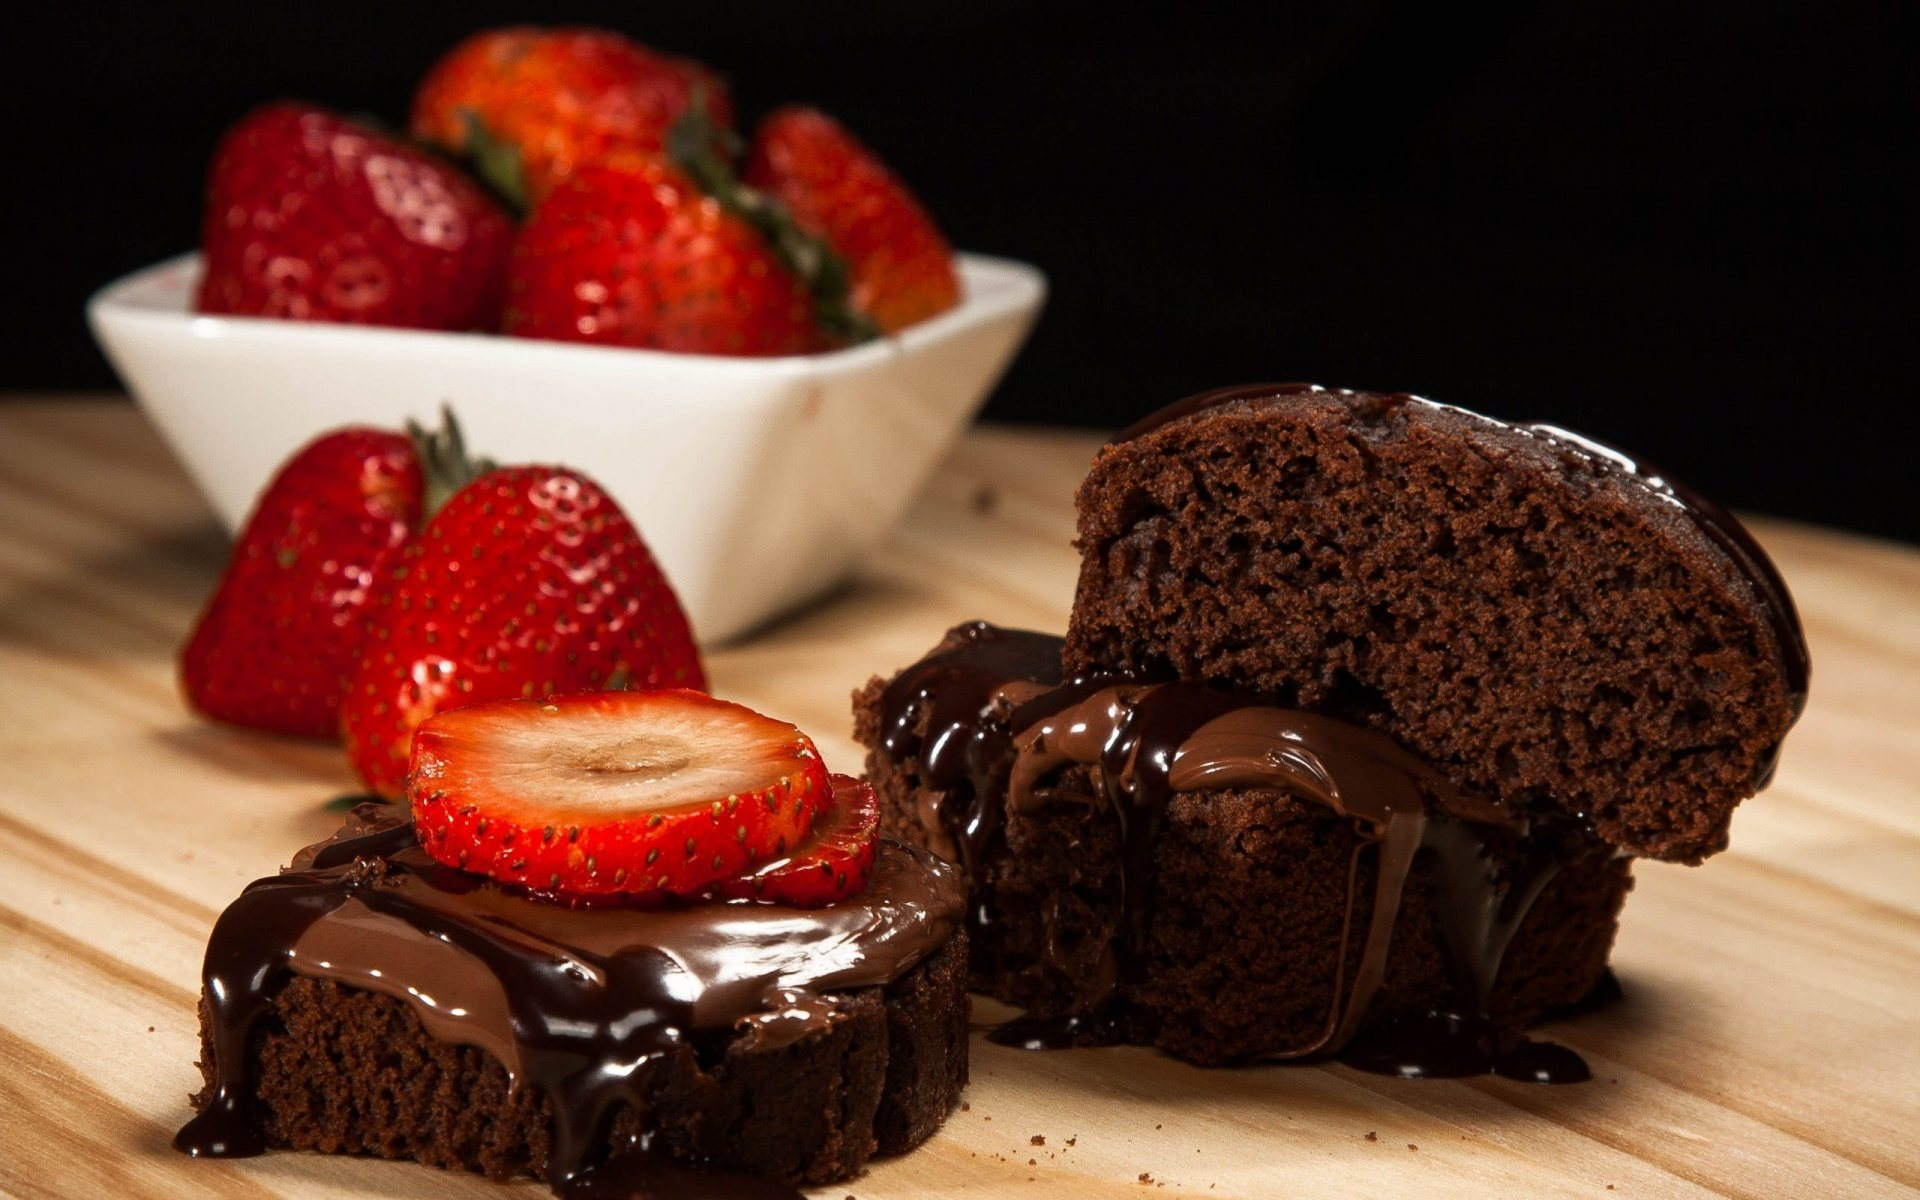 Chocolate Strawberry Cake Full Hd Desktop Wallpapers 1080p